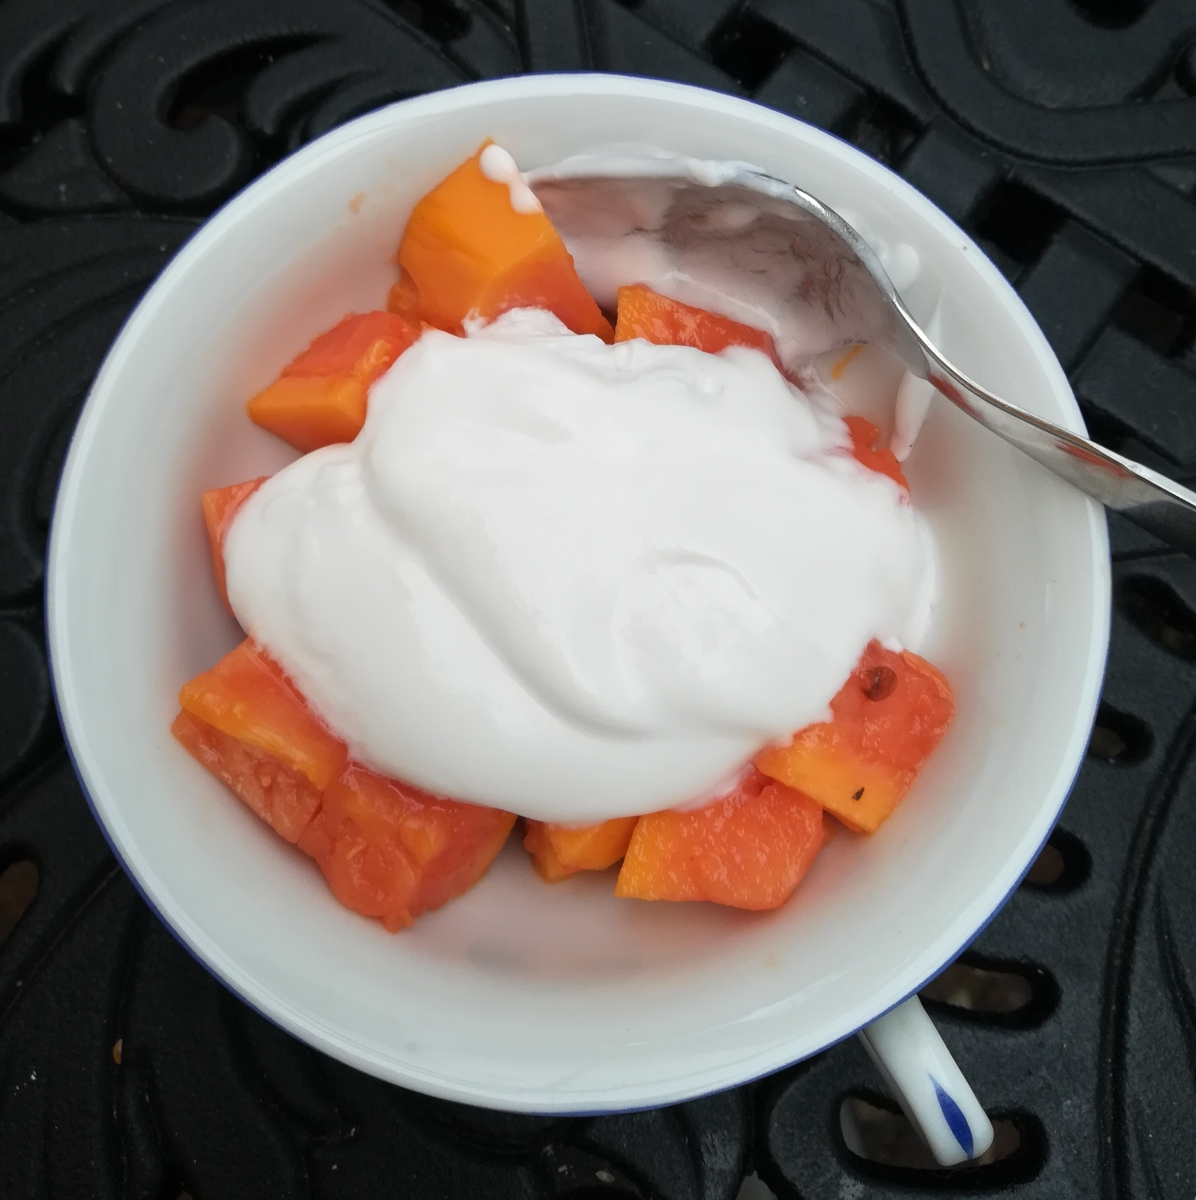 LCHF foods that I love to eat - coconut kefir and papaya